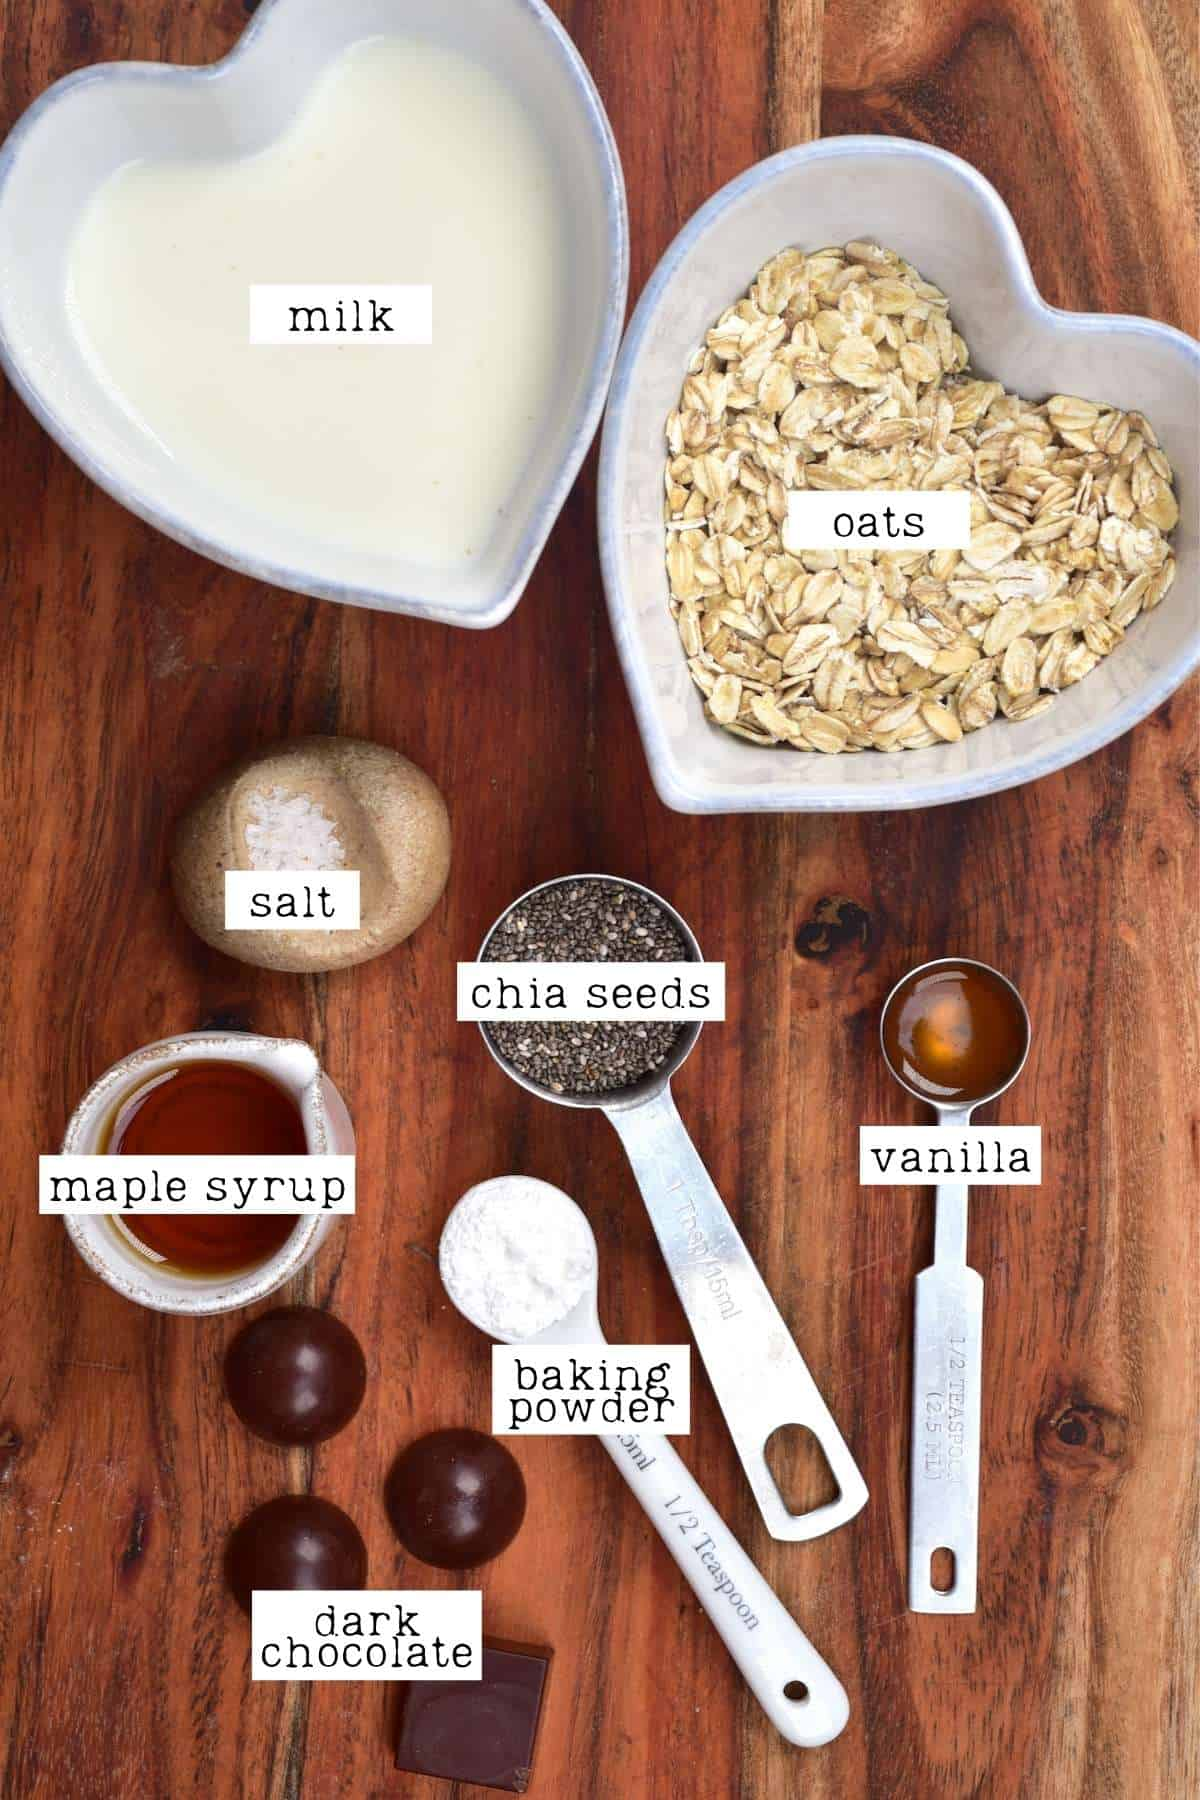 Ingredients for vanilla chocolate baked oats